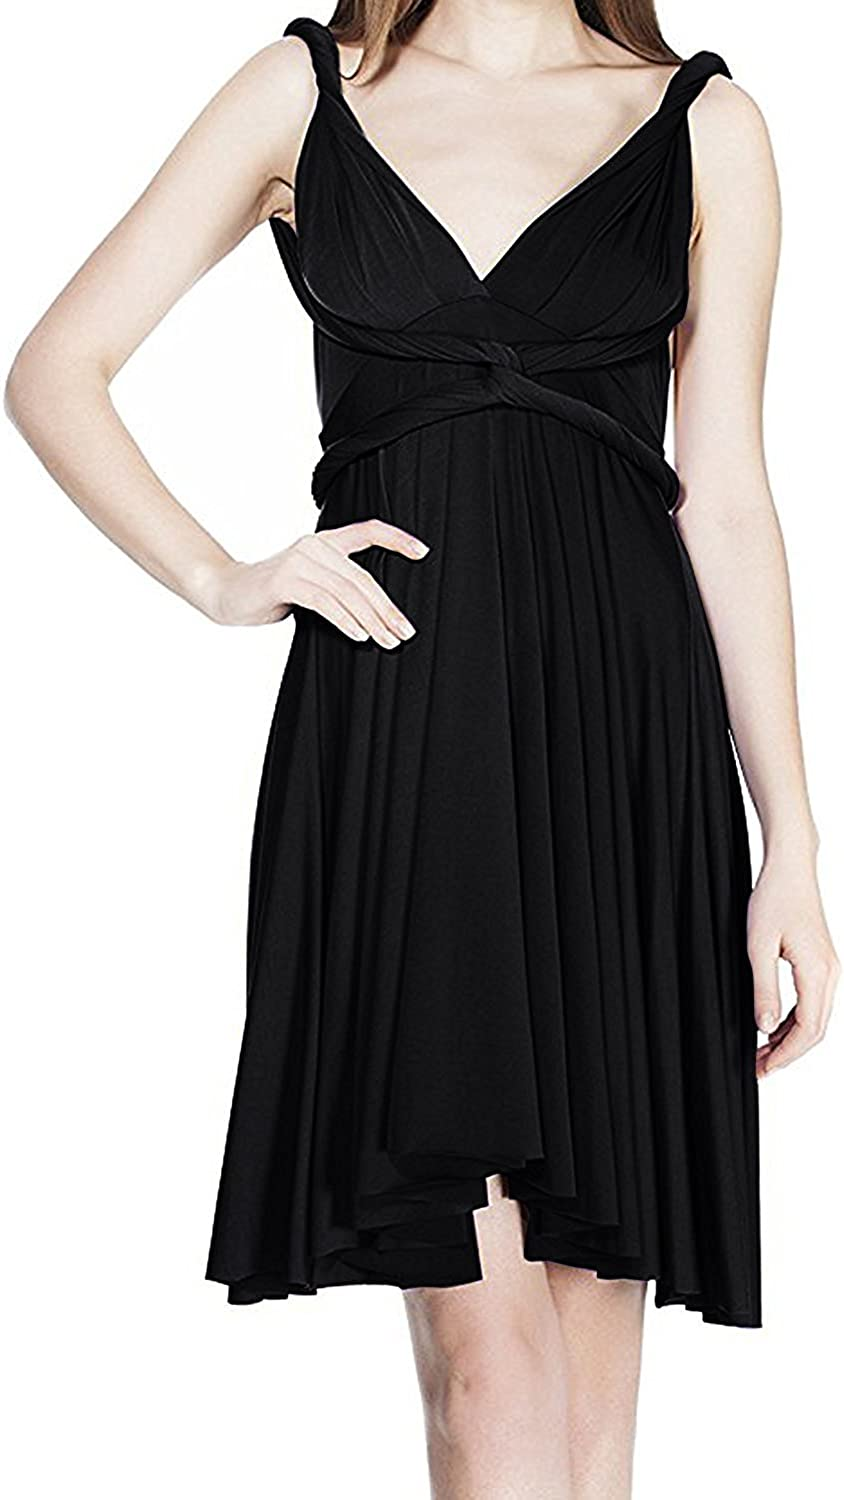 New Orleans Mall Womens Transformer Convertible Multi Way Evening Dress Wrap Halt Online limited product